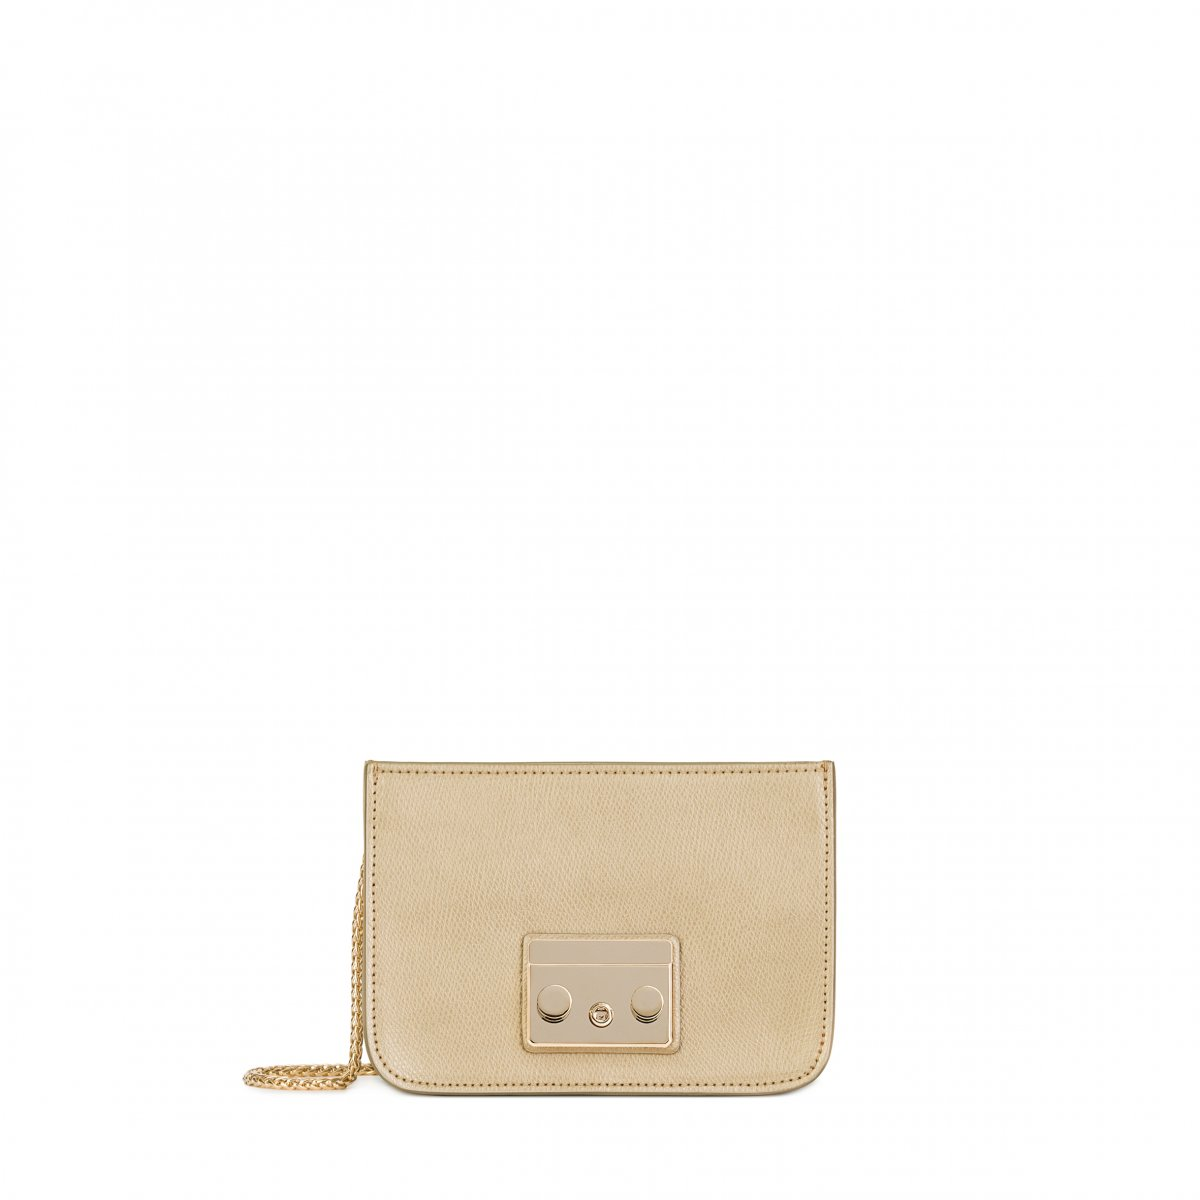 Doplnok FURLA METROPOLIS MINI CROSSBODY BODY